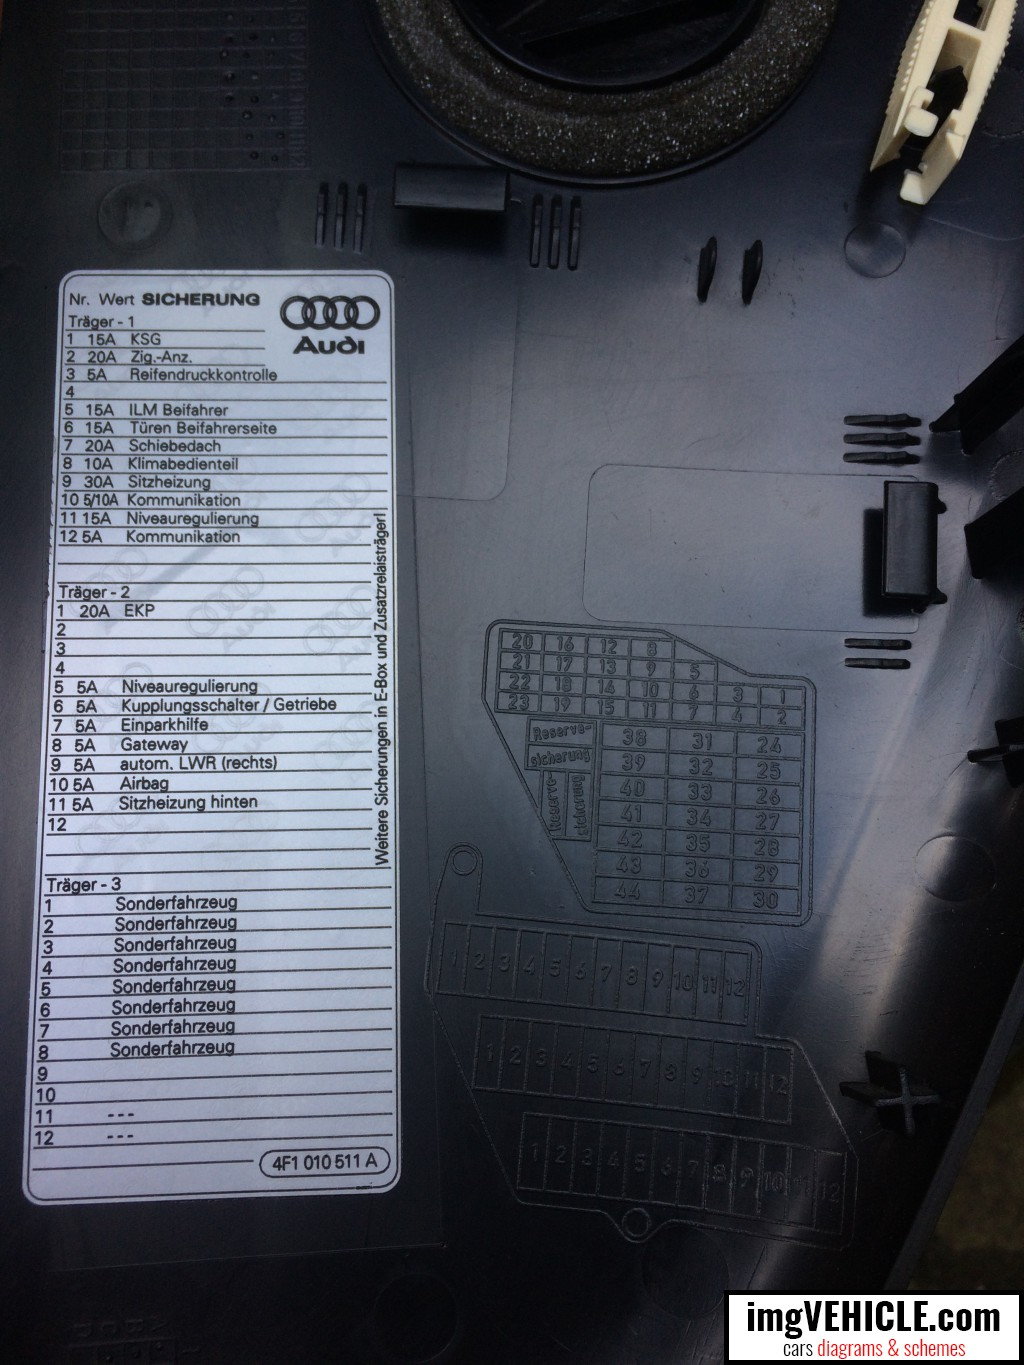 hight resolution of audi a6 c6 fuse diagram wiring diagram advance fuse box audi a6 c6 a6 c6 fuse